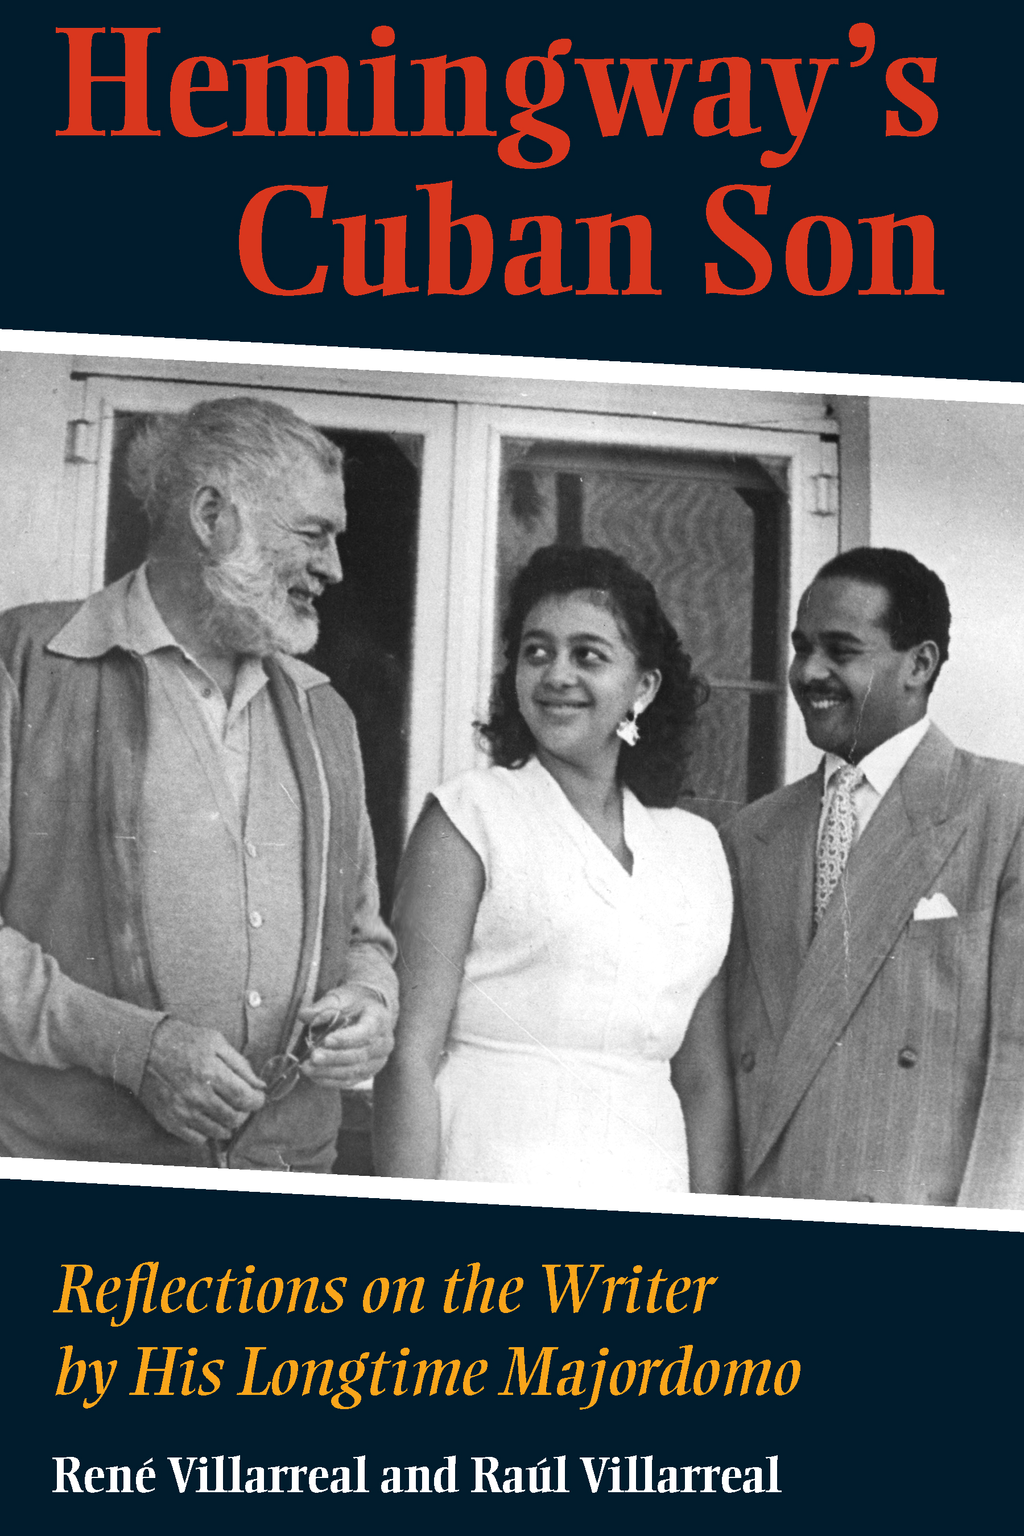 Hemingway's Cuban Son: Reflections on the Writer by His Longtim Majordomo By: Raul Villarreal